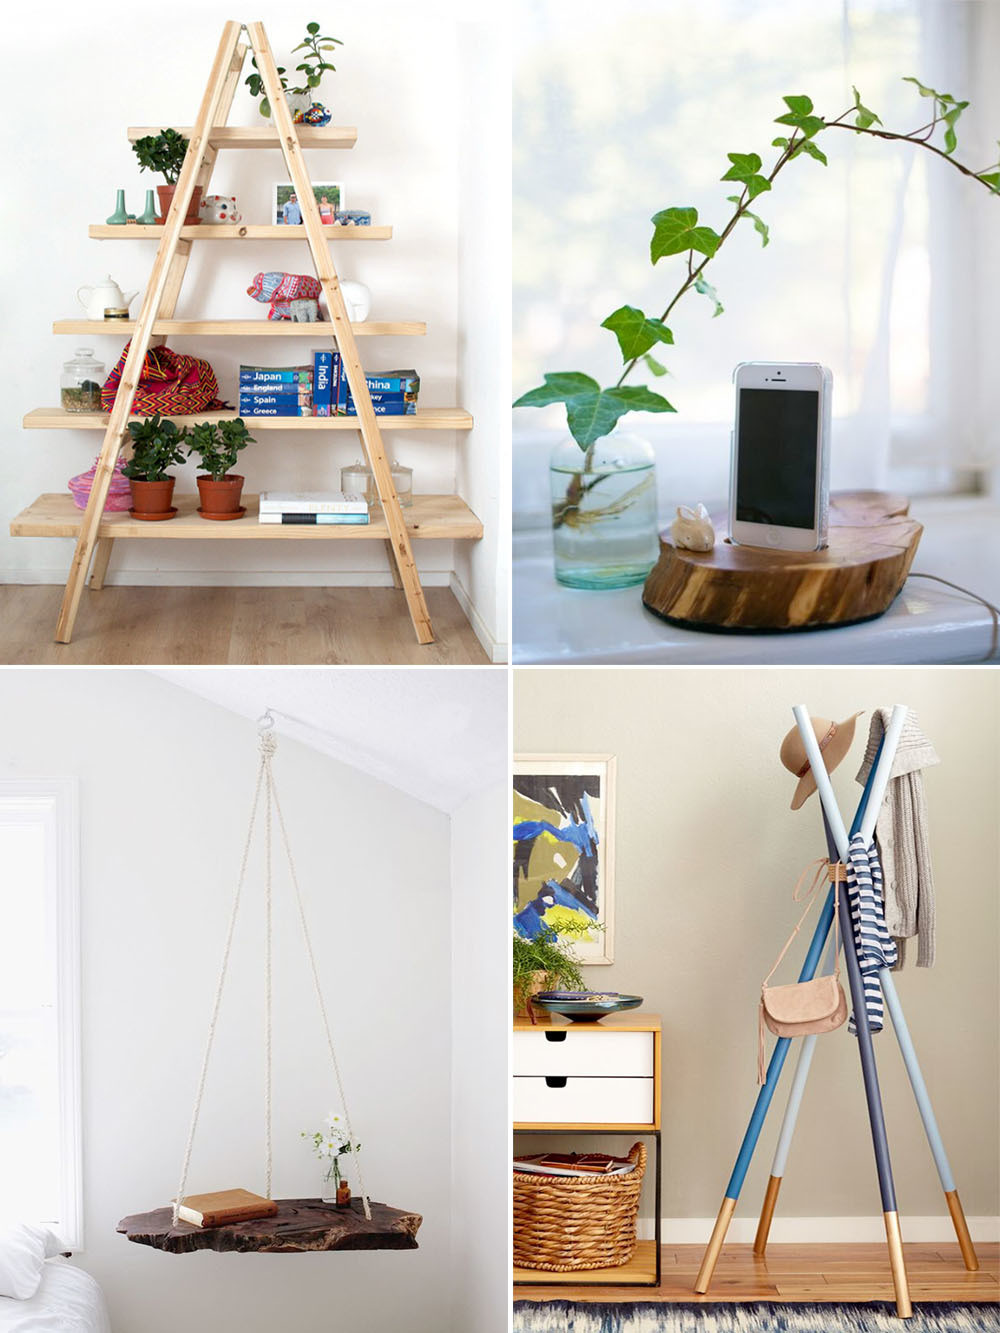 Easy DIY Wood Projects  Roundup 10 Beginner Woodworking Projects Using Basic